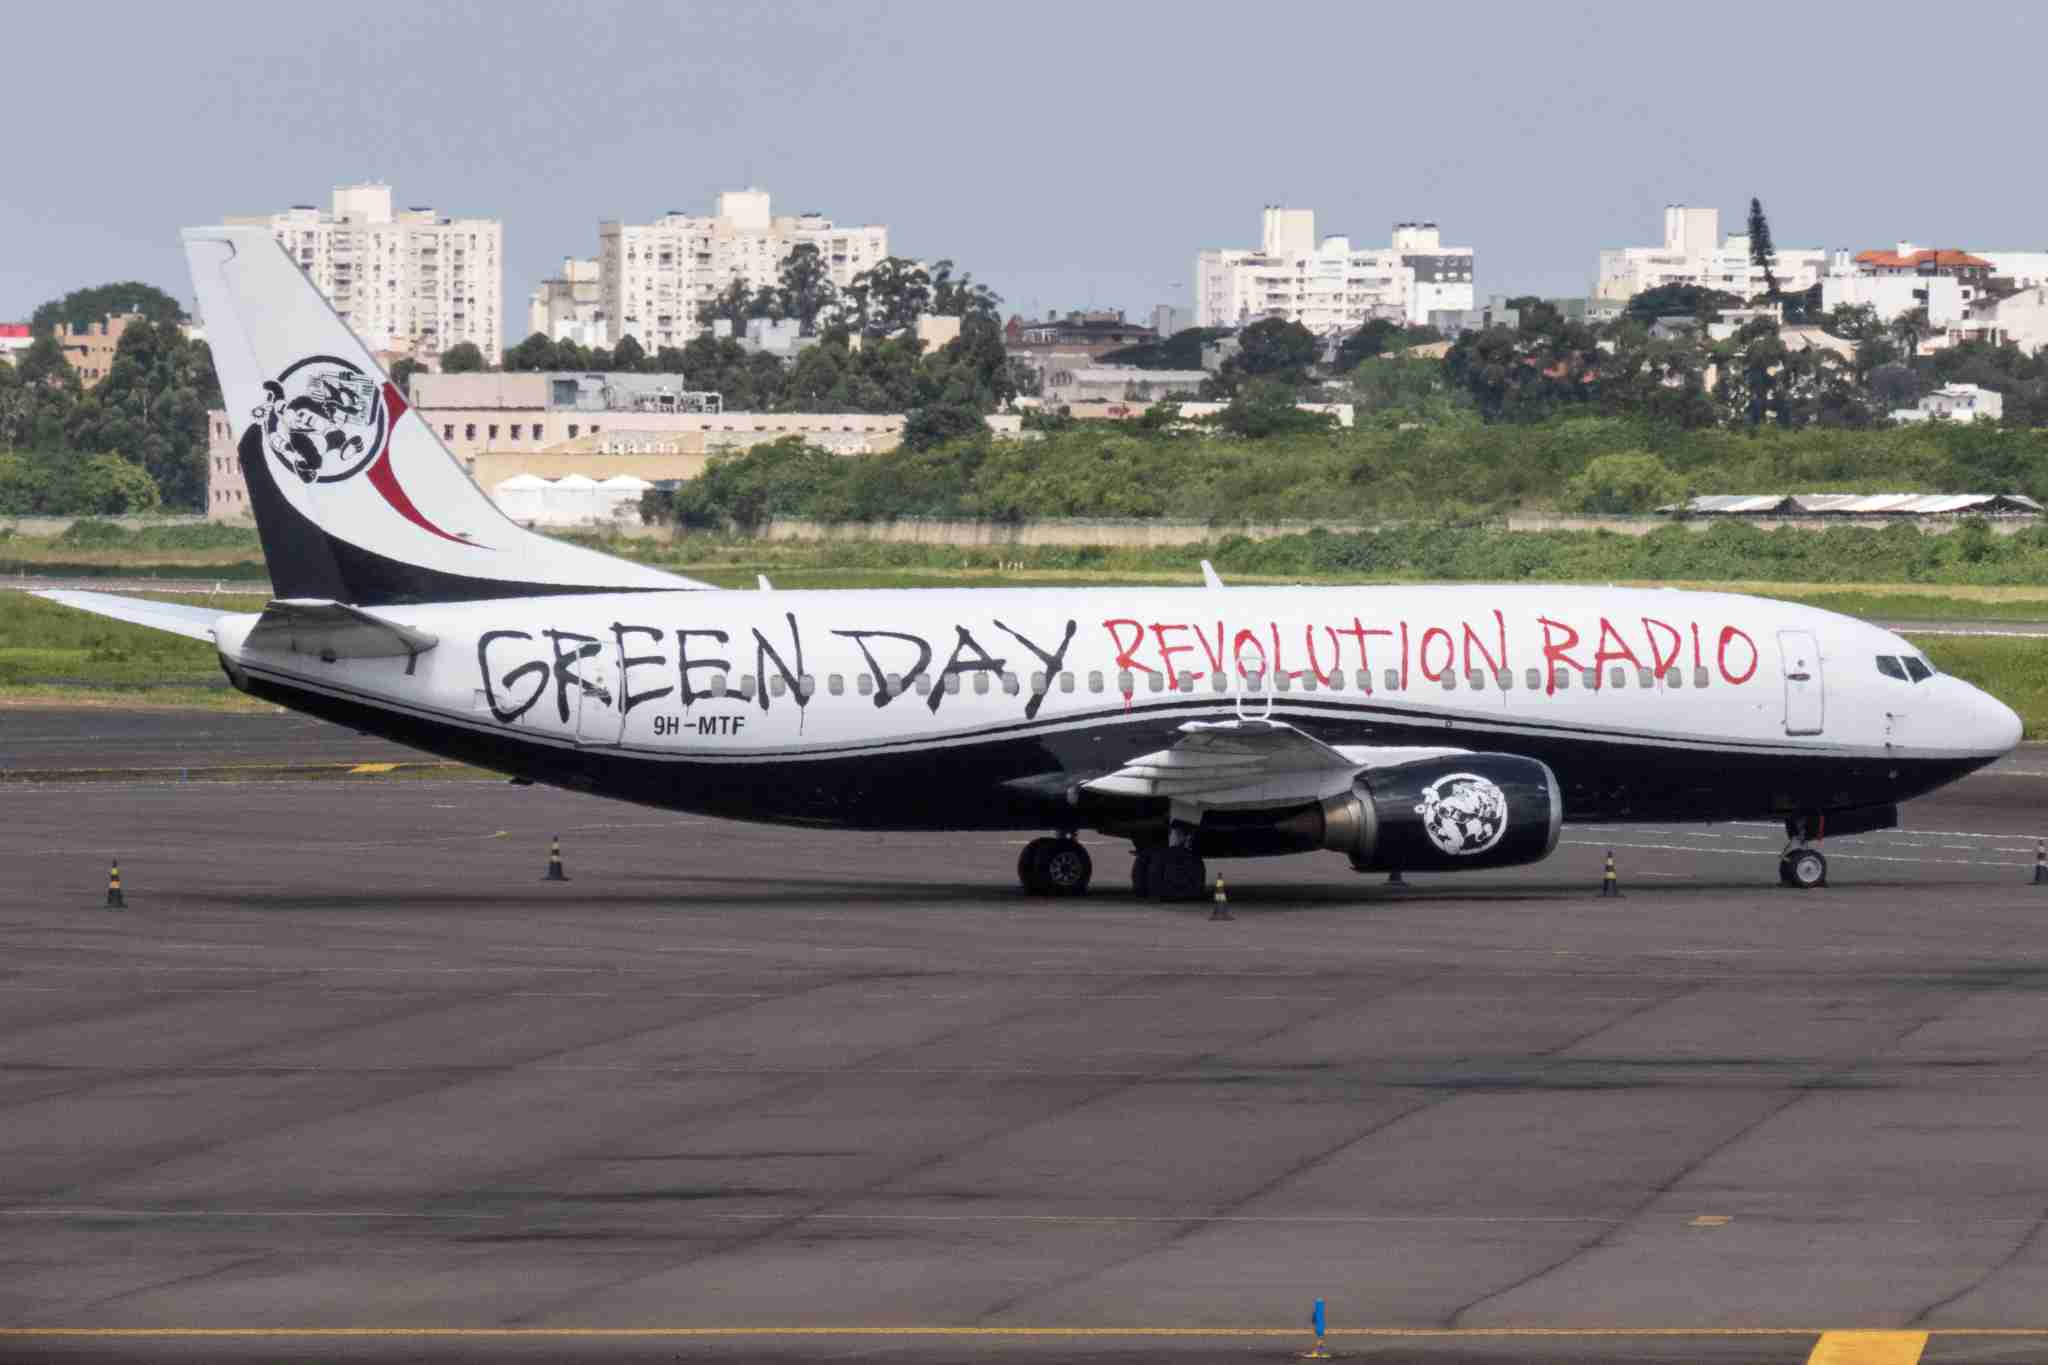 The aircraft was previously used by Green Day on the band